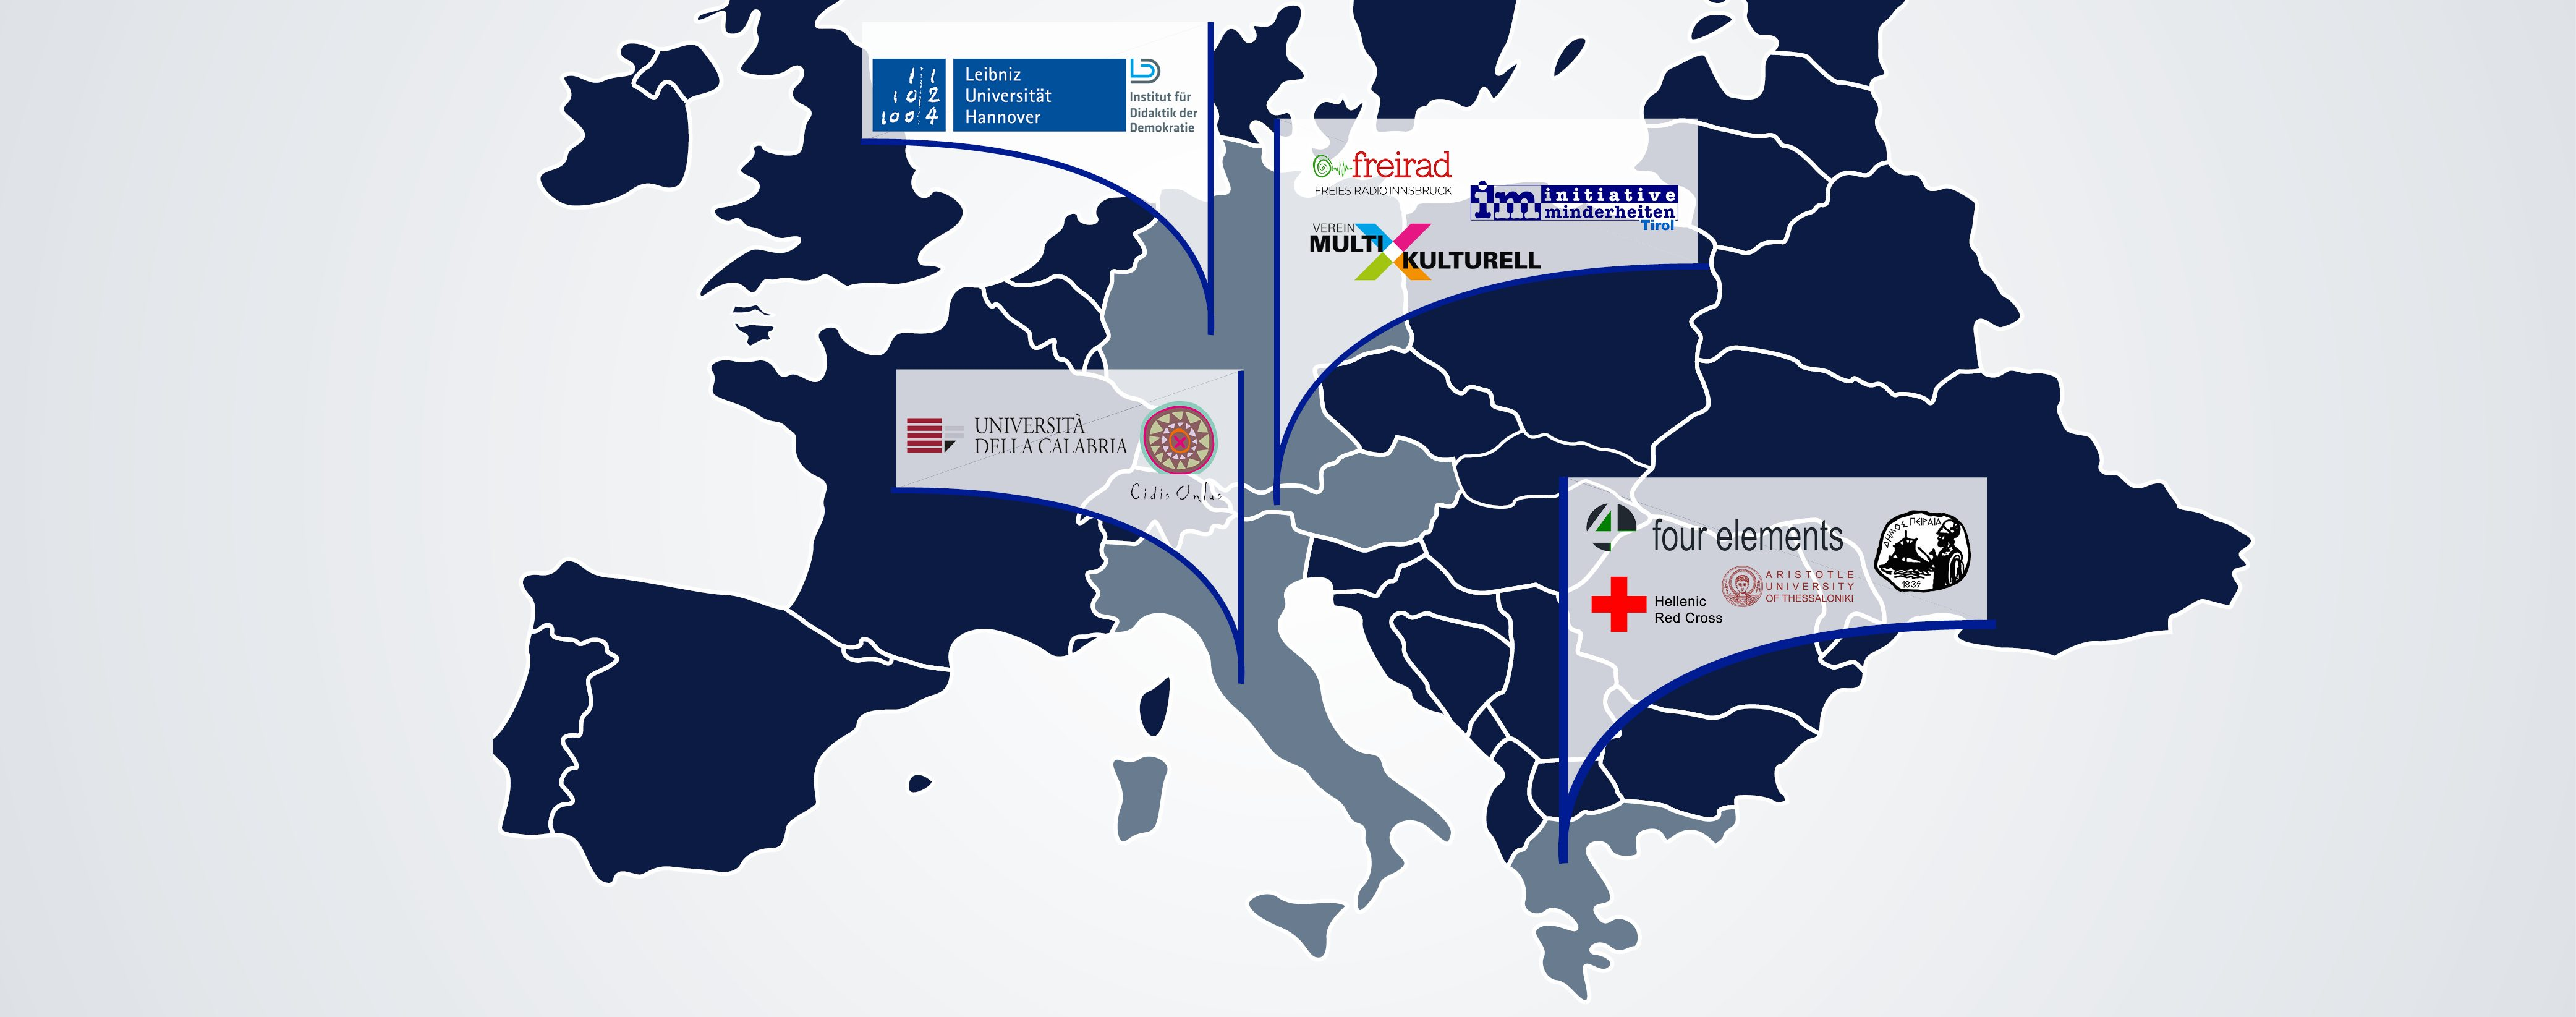 European map showing the logos of the partner organisations in their respective countries.